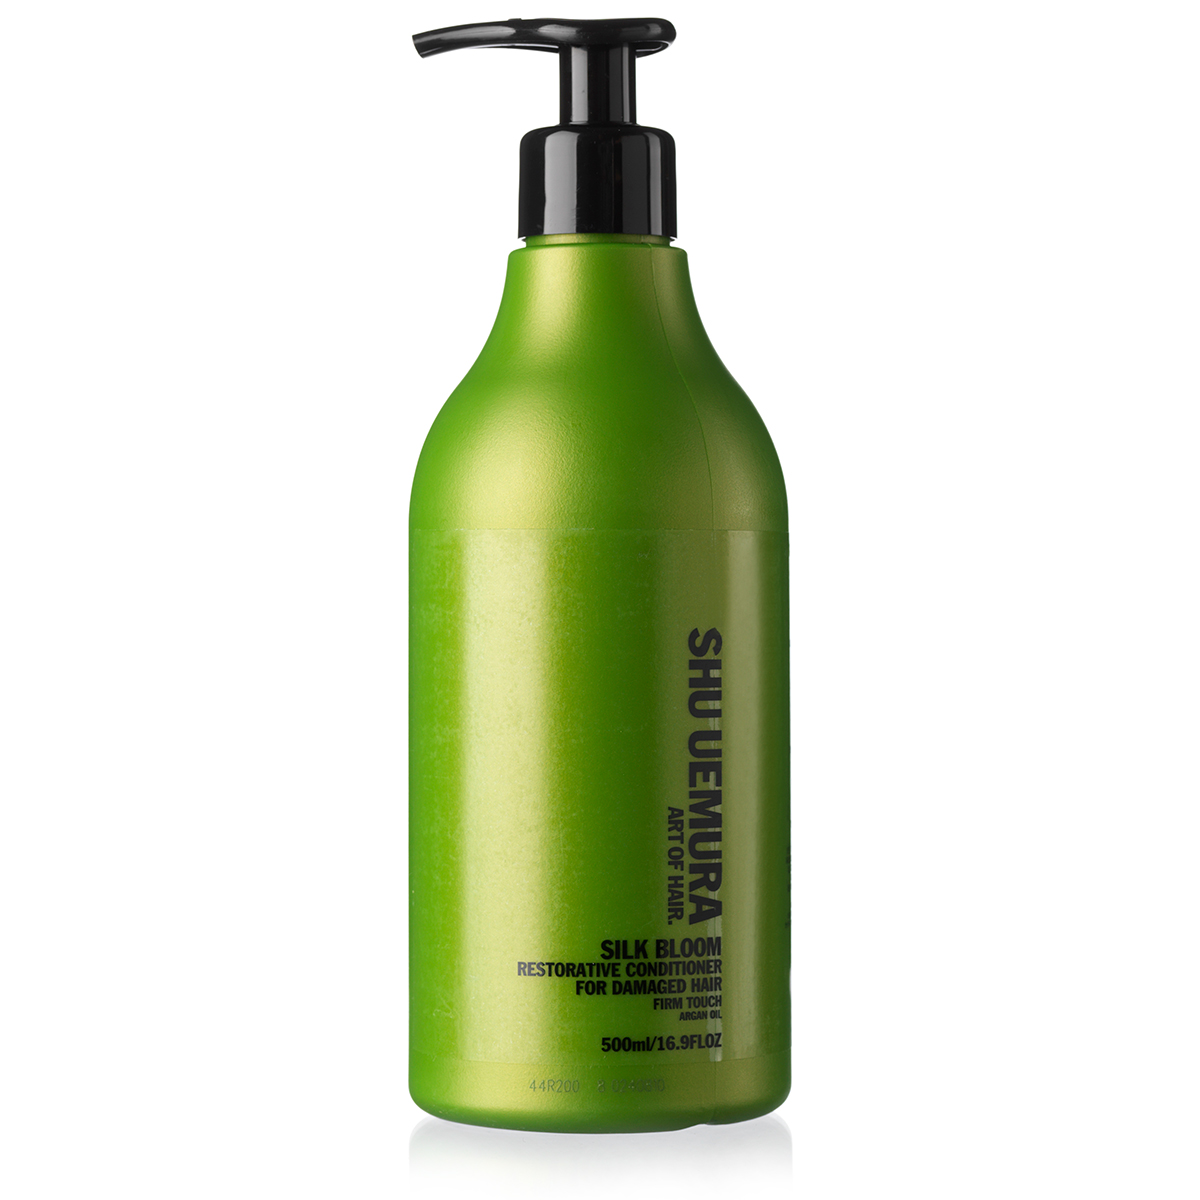 Shu Uemura Silk Bloom Conditioner - 500 ml